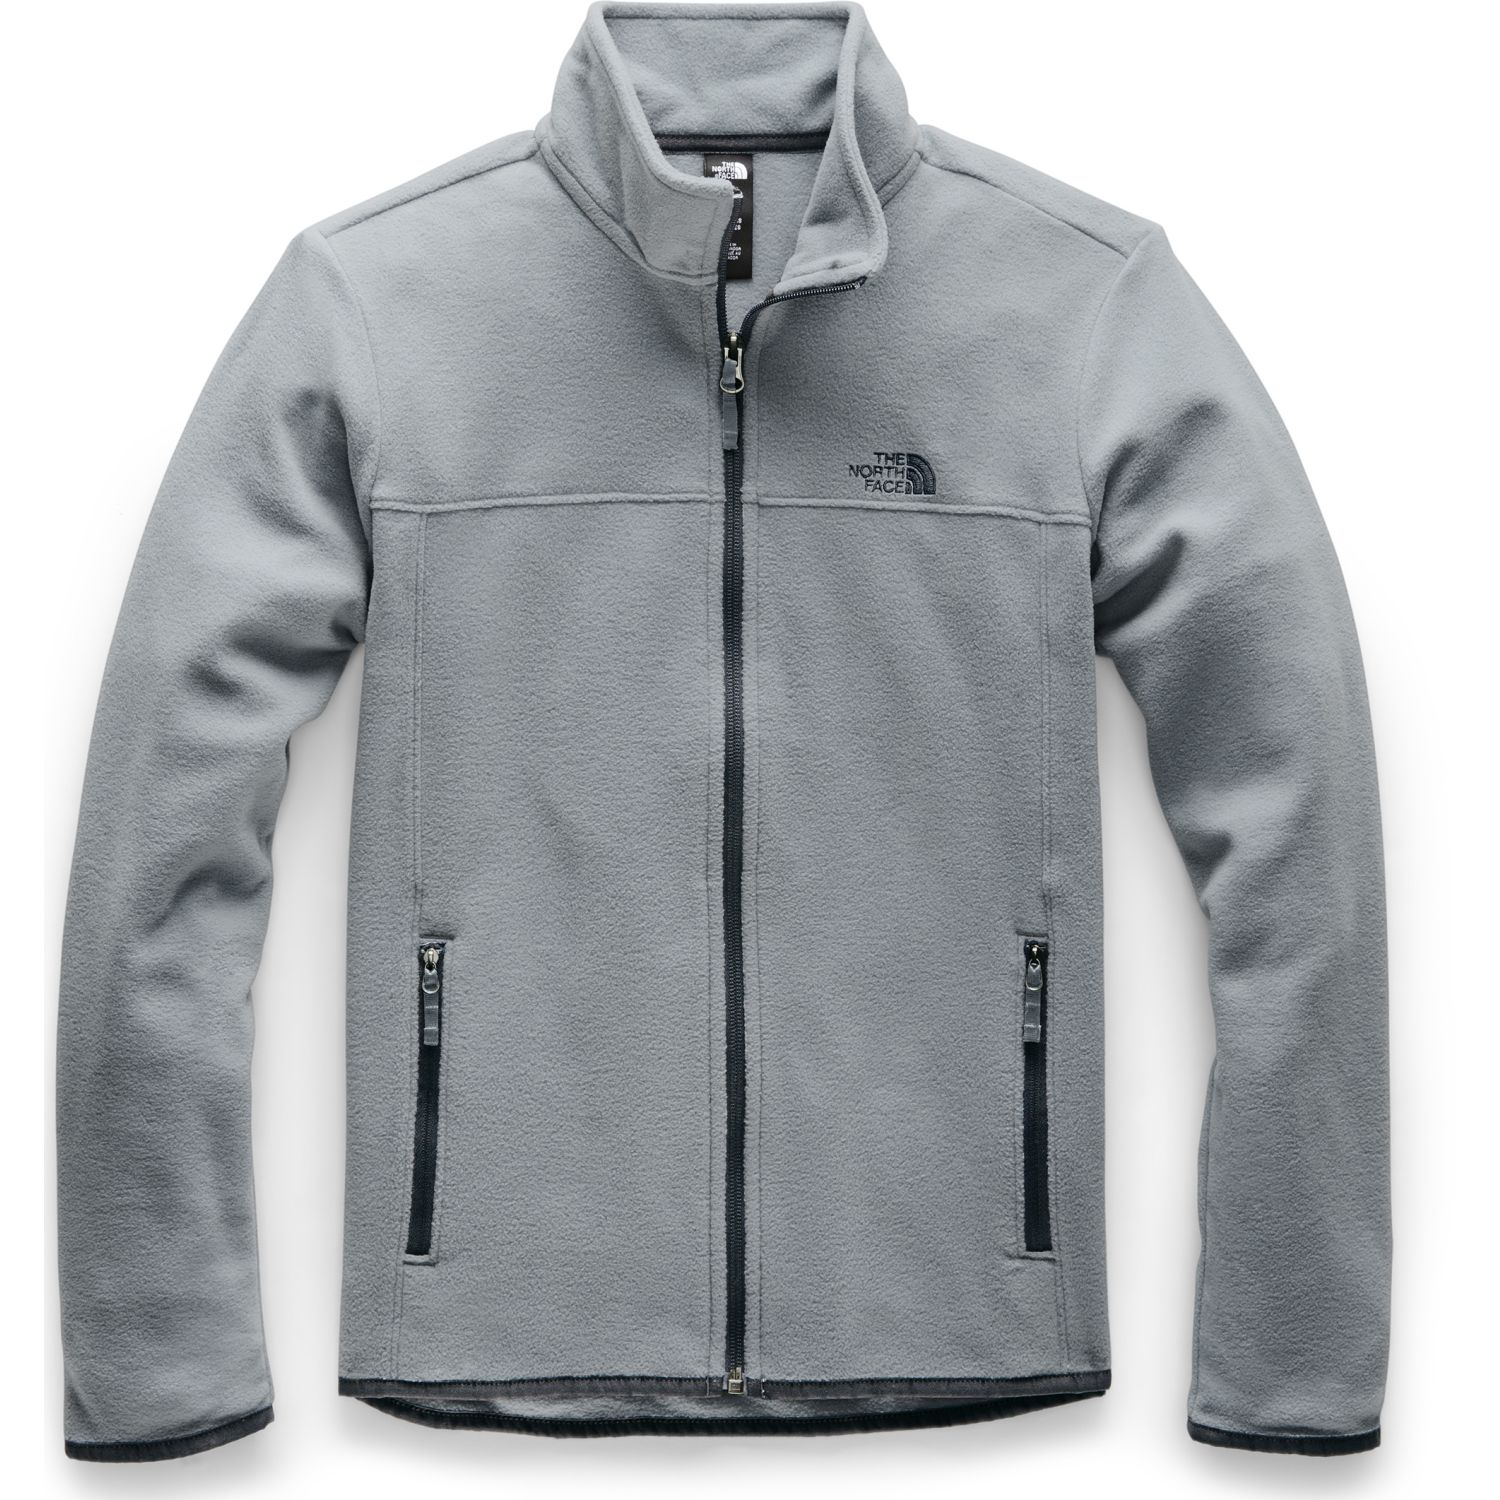 The North Face w tka glacier full zip jacket Gris Pullovers